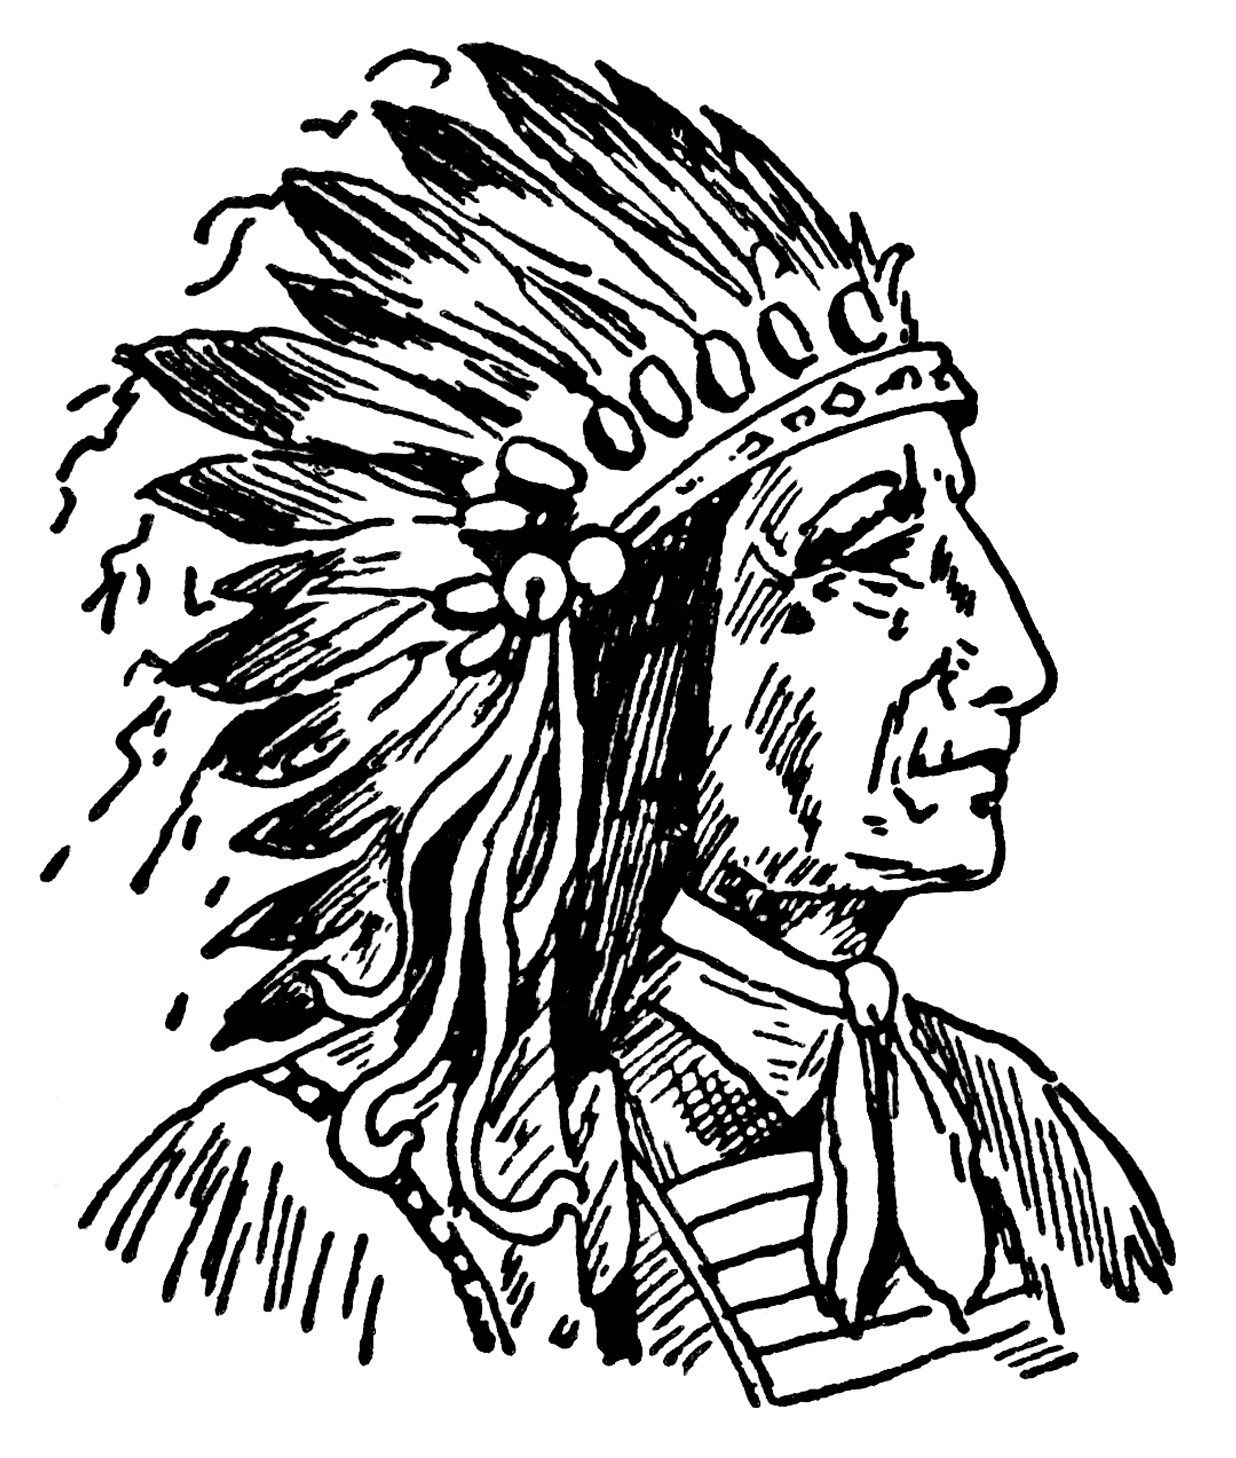 Indian Chief Clip Art Vintage Native American Illustration Black And White Clipart Warrior